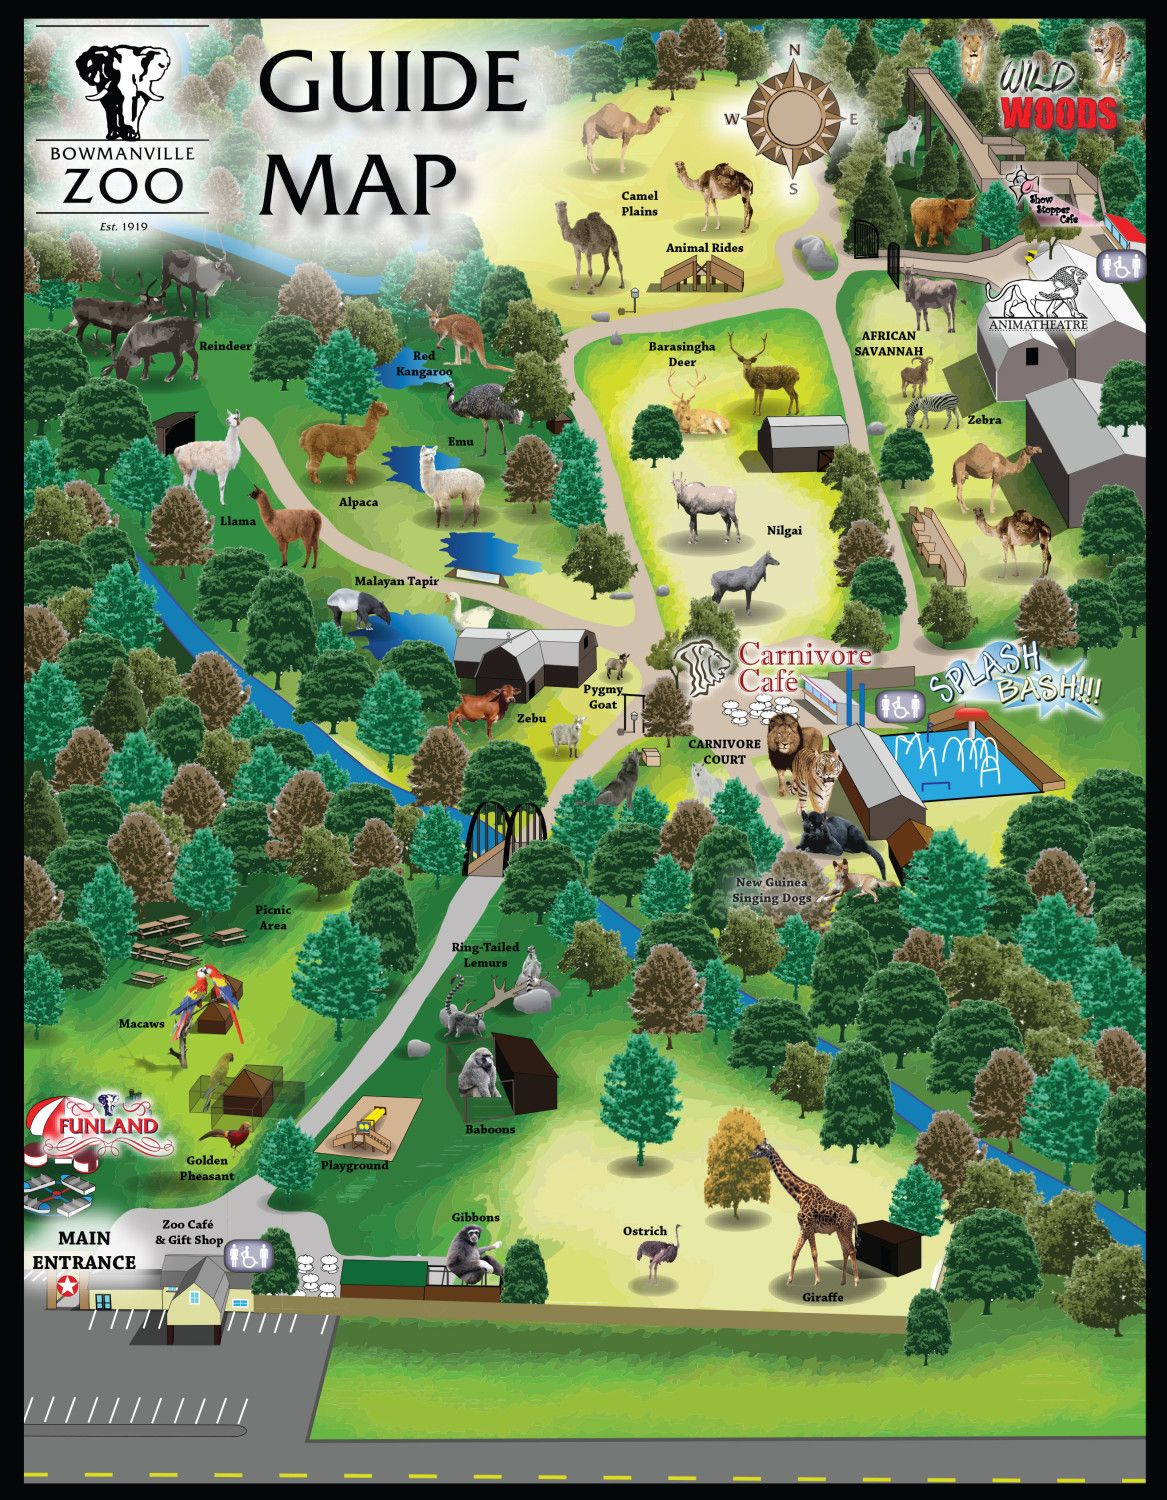 Lowry Park Zoo Florida Maps Pinterest Zoos and Park